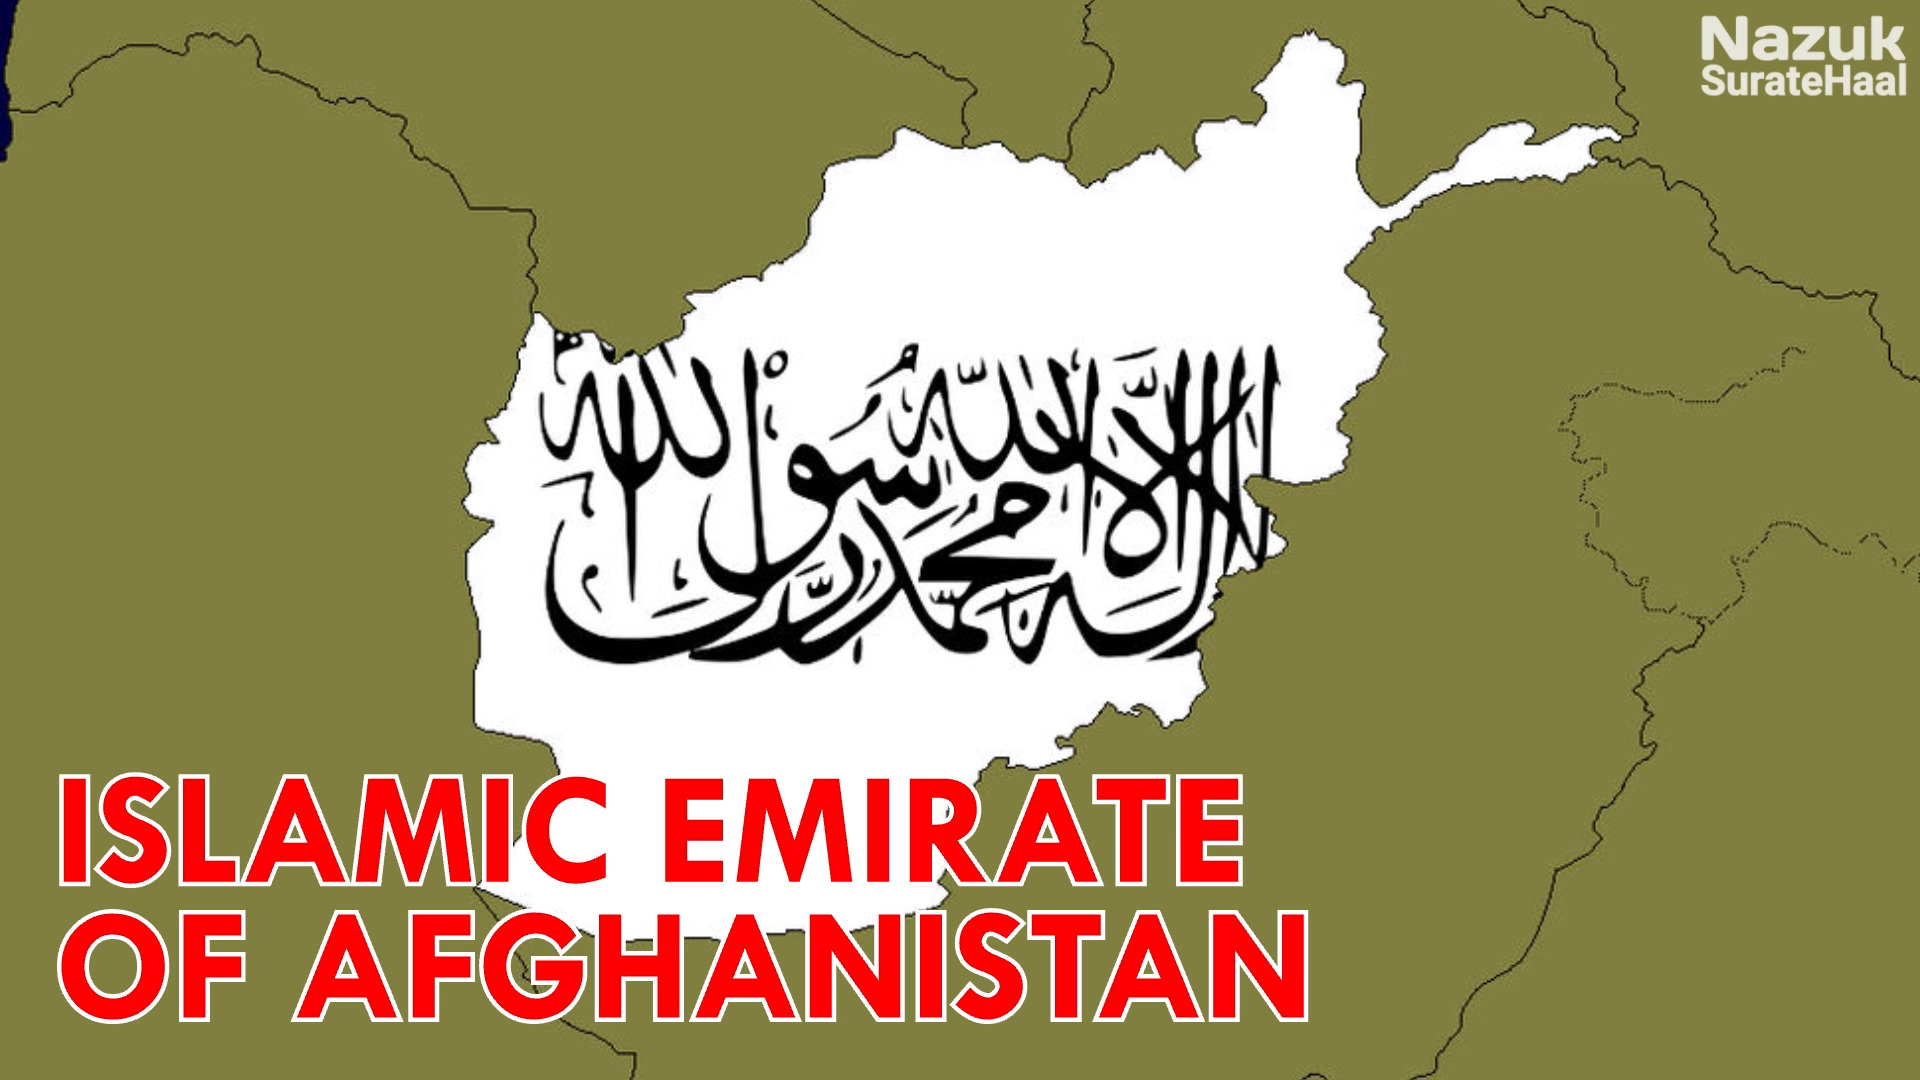 Islamic Emirate of Afghanistan by Taliban